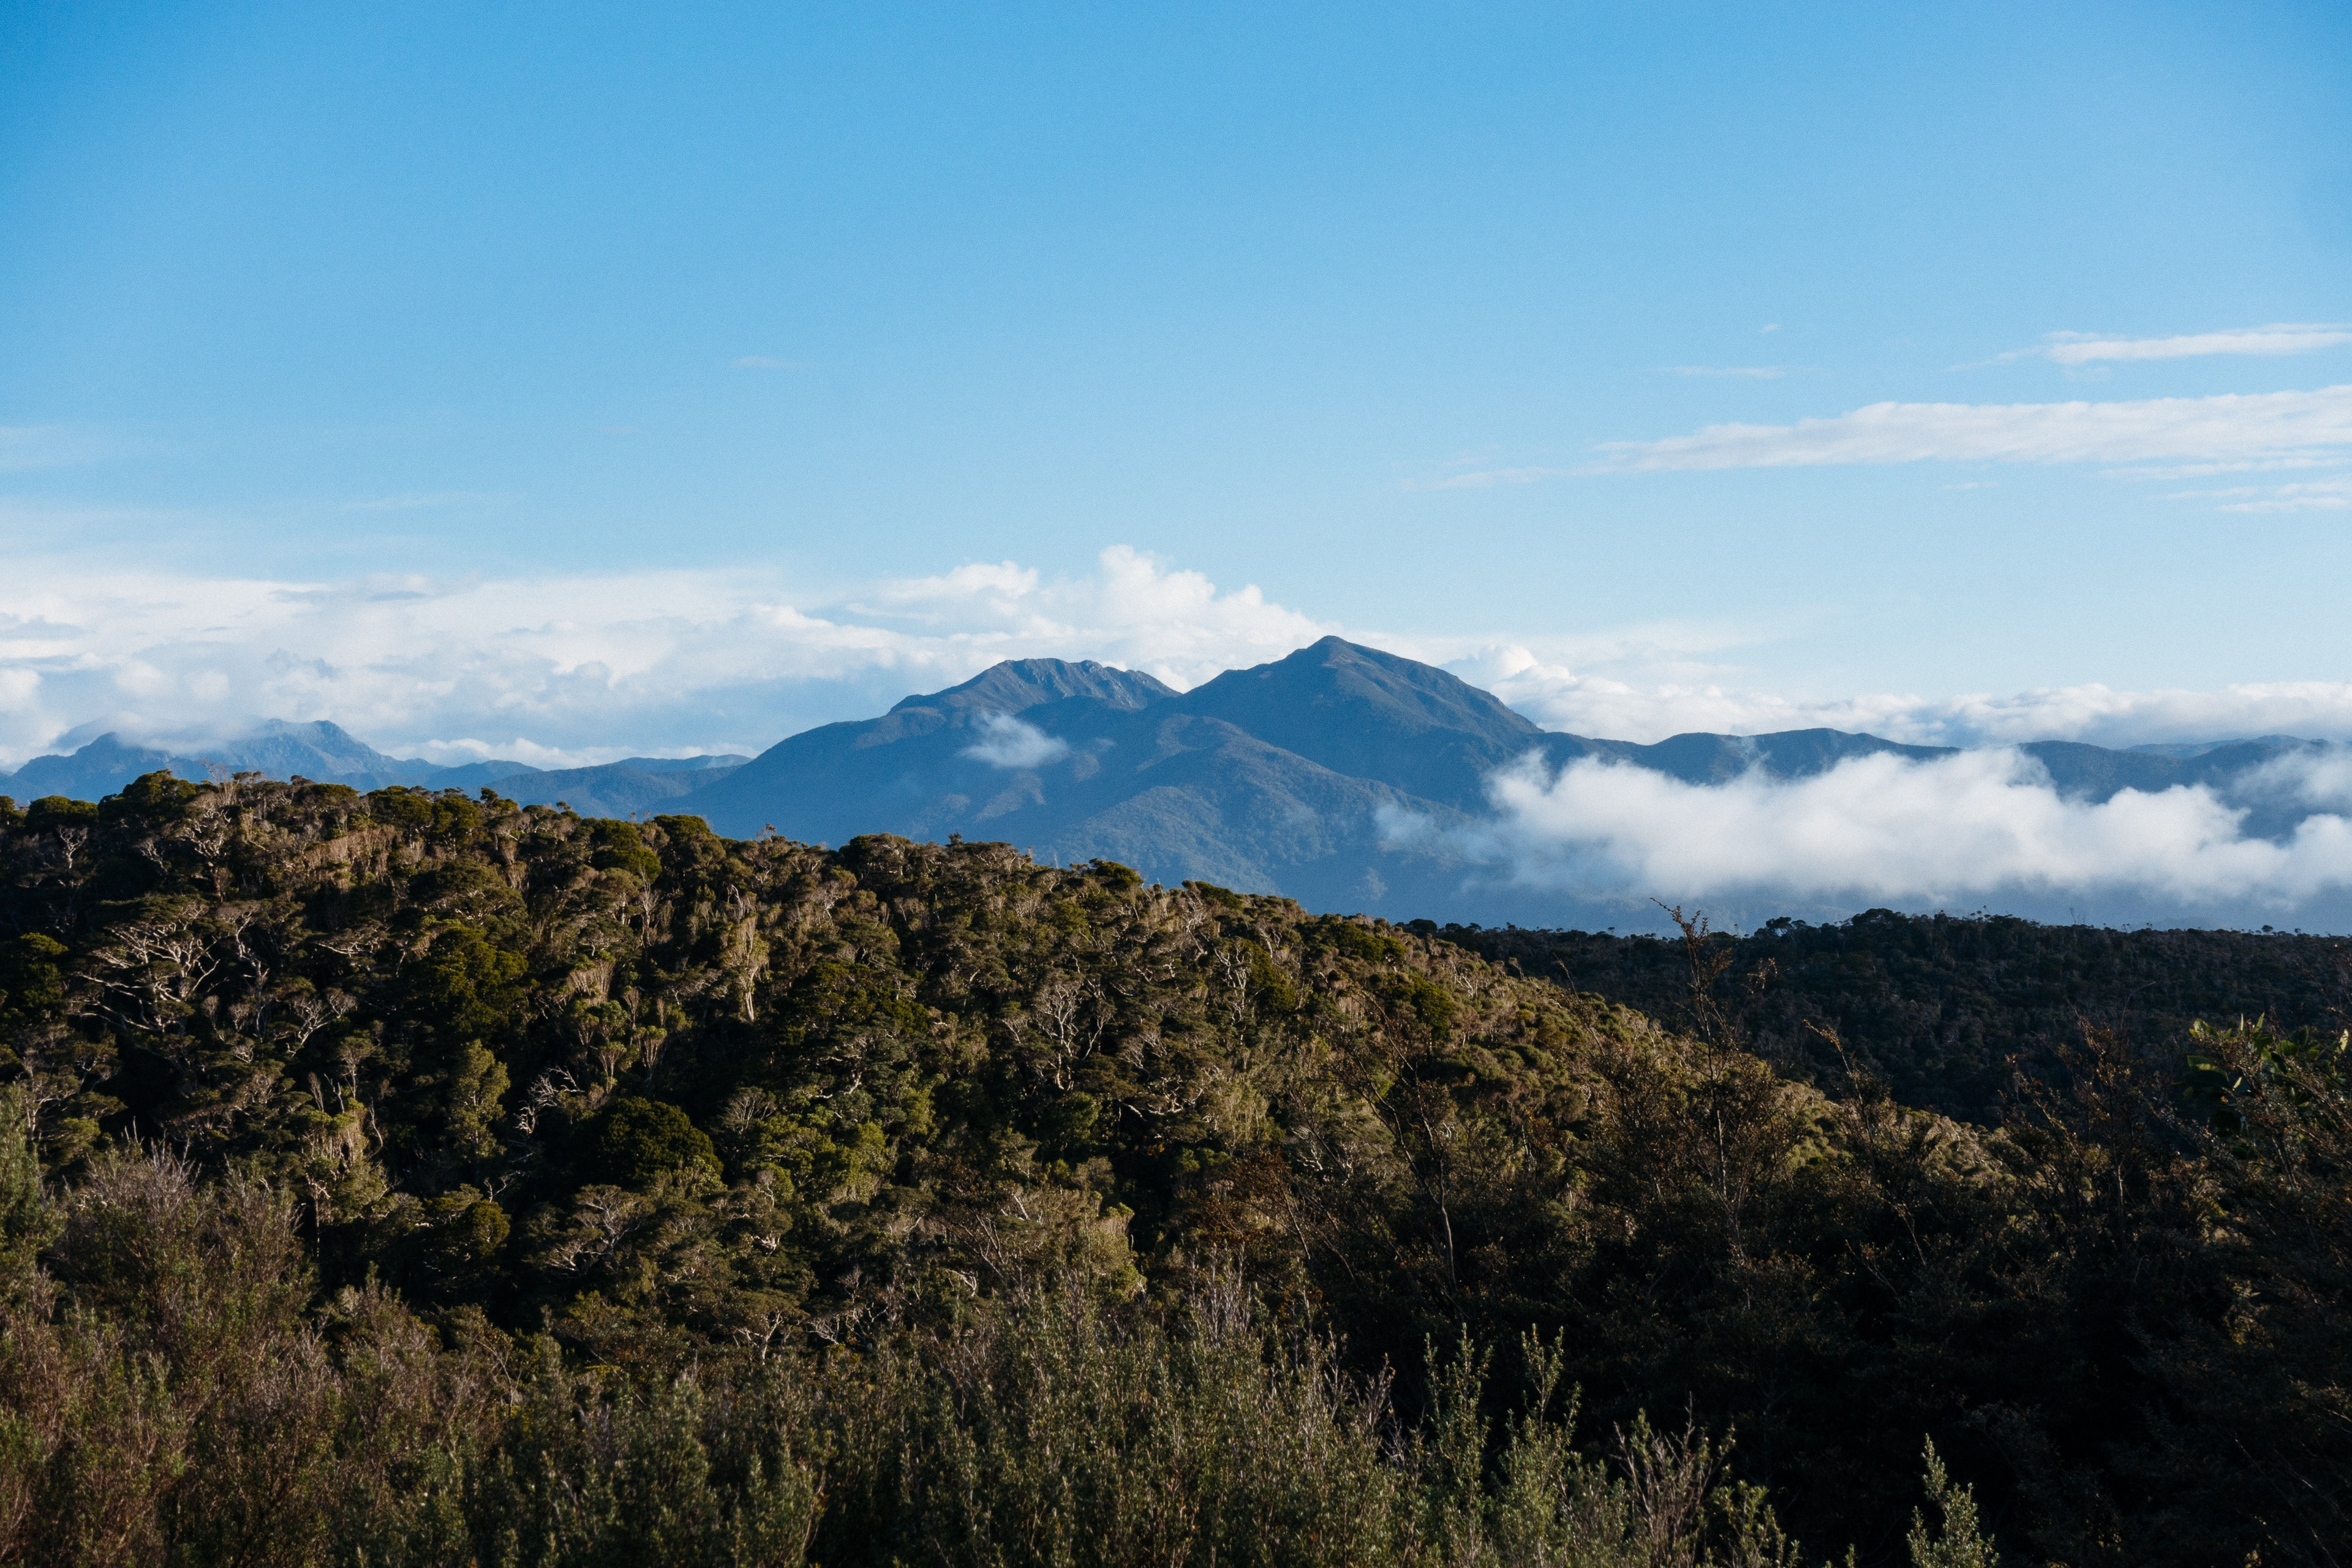 A view over the ranges from James Mackay Hut